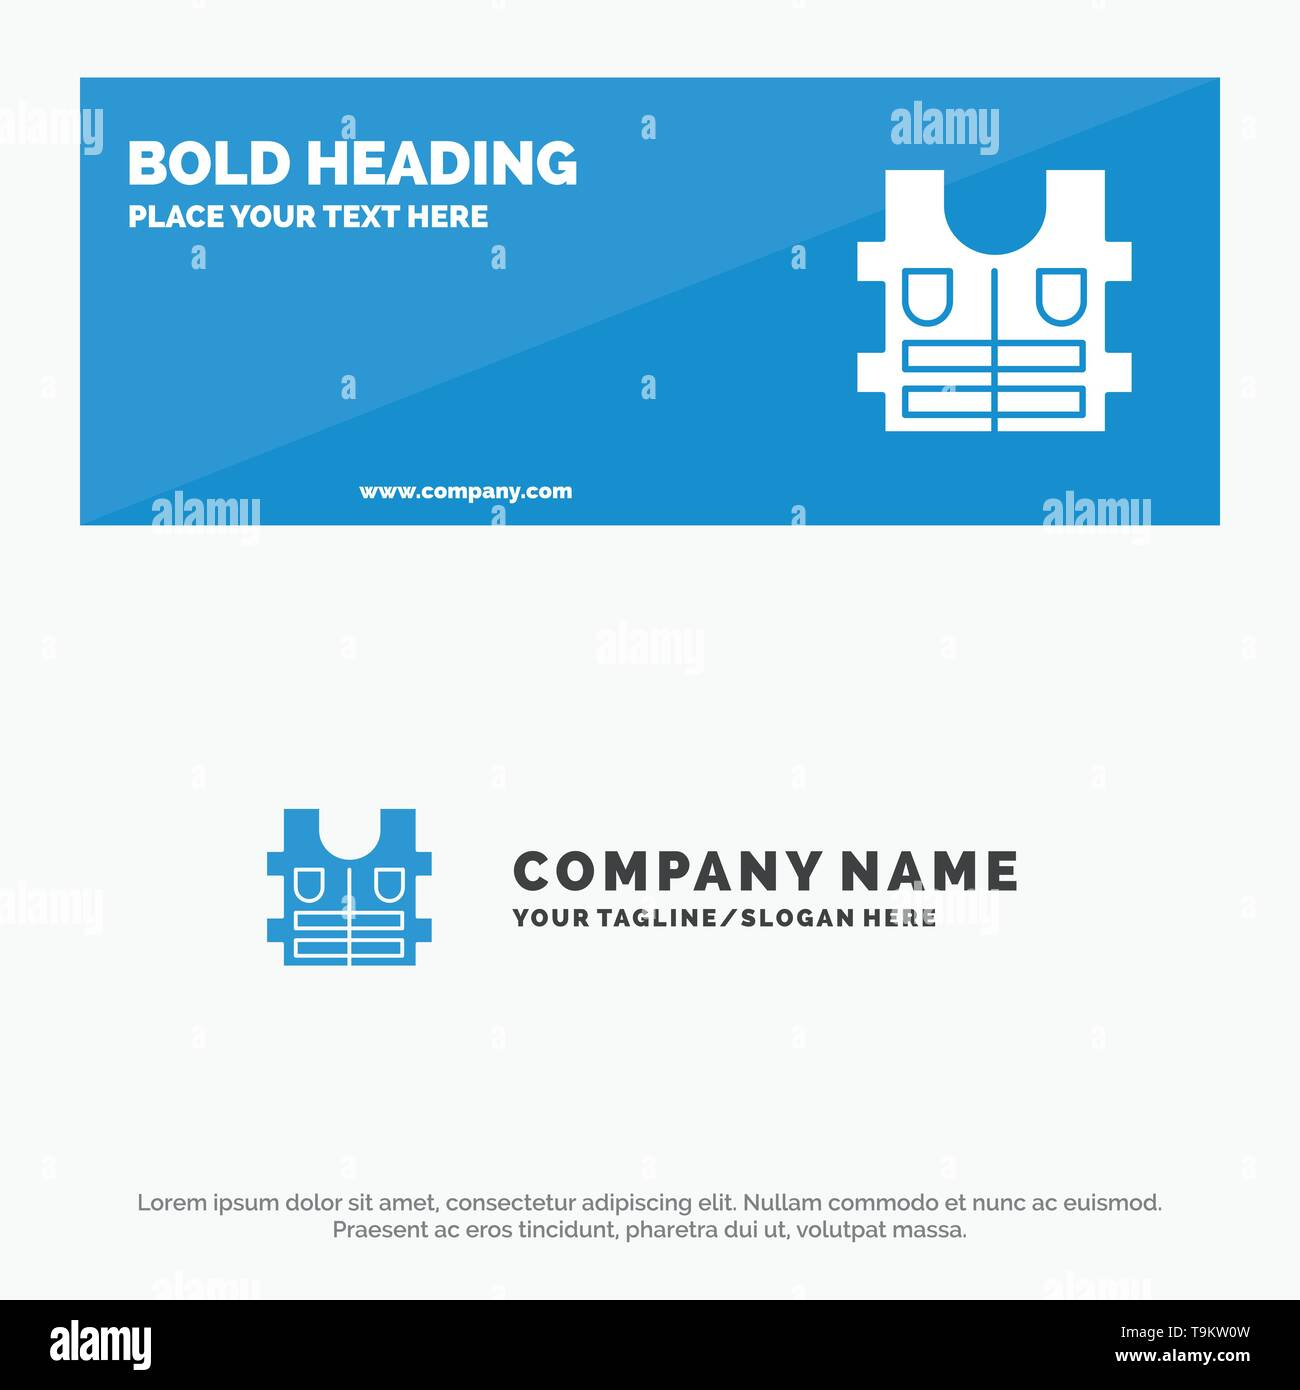 Jacket, Life, Safety SOlid Icon Website Banner and Business Logo Template - Stock Image